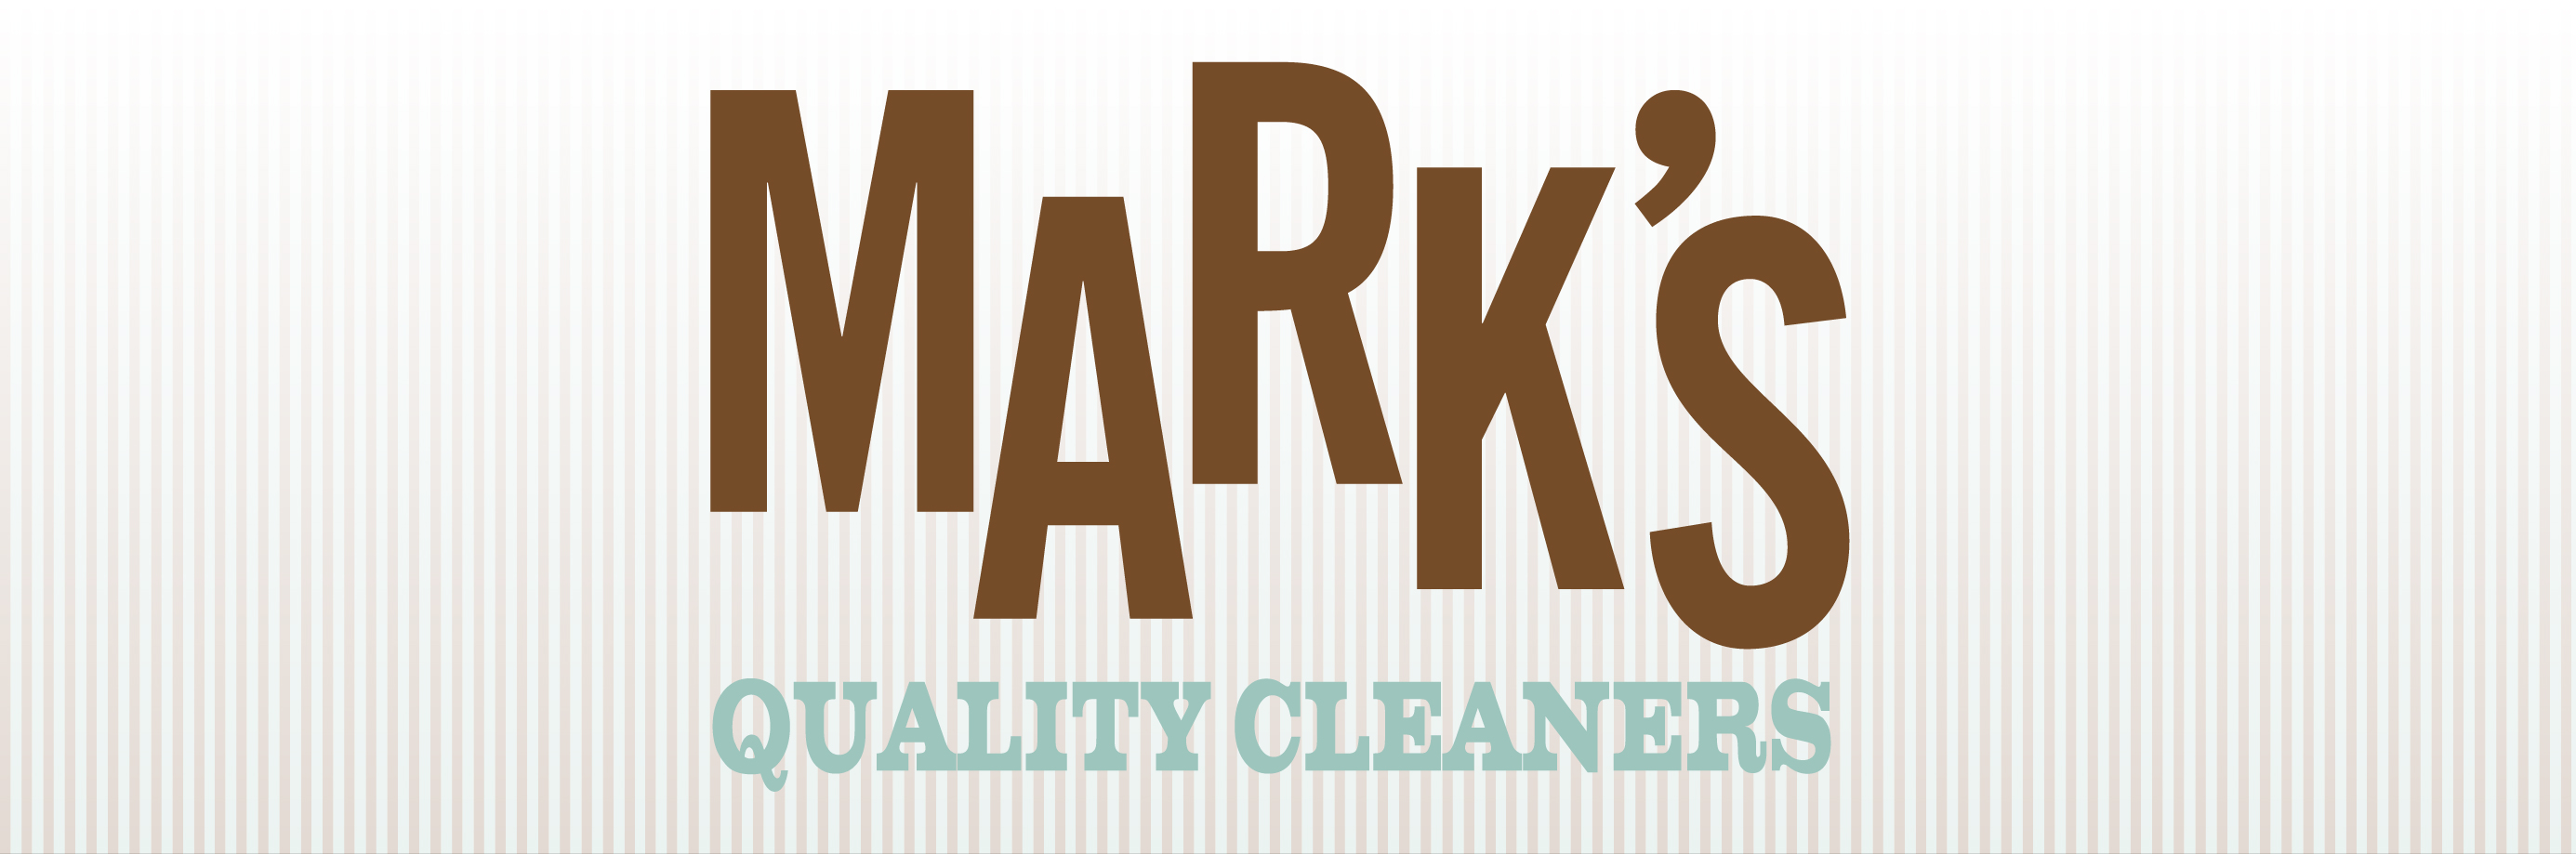 Mark;s Quality Cleaners & Laundry | Dry Cleaning & Laundry in 700 W 51st St - Miami Beach FL - Reviews - Photos - Phone Number